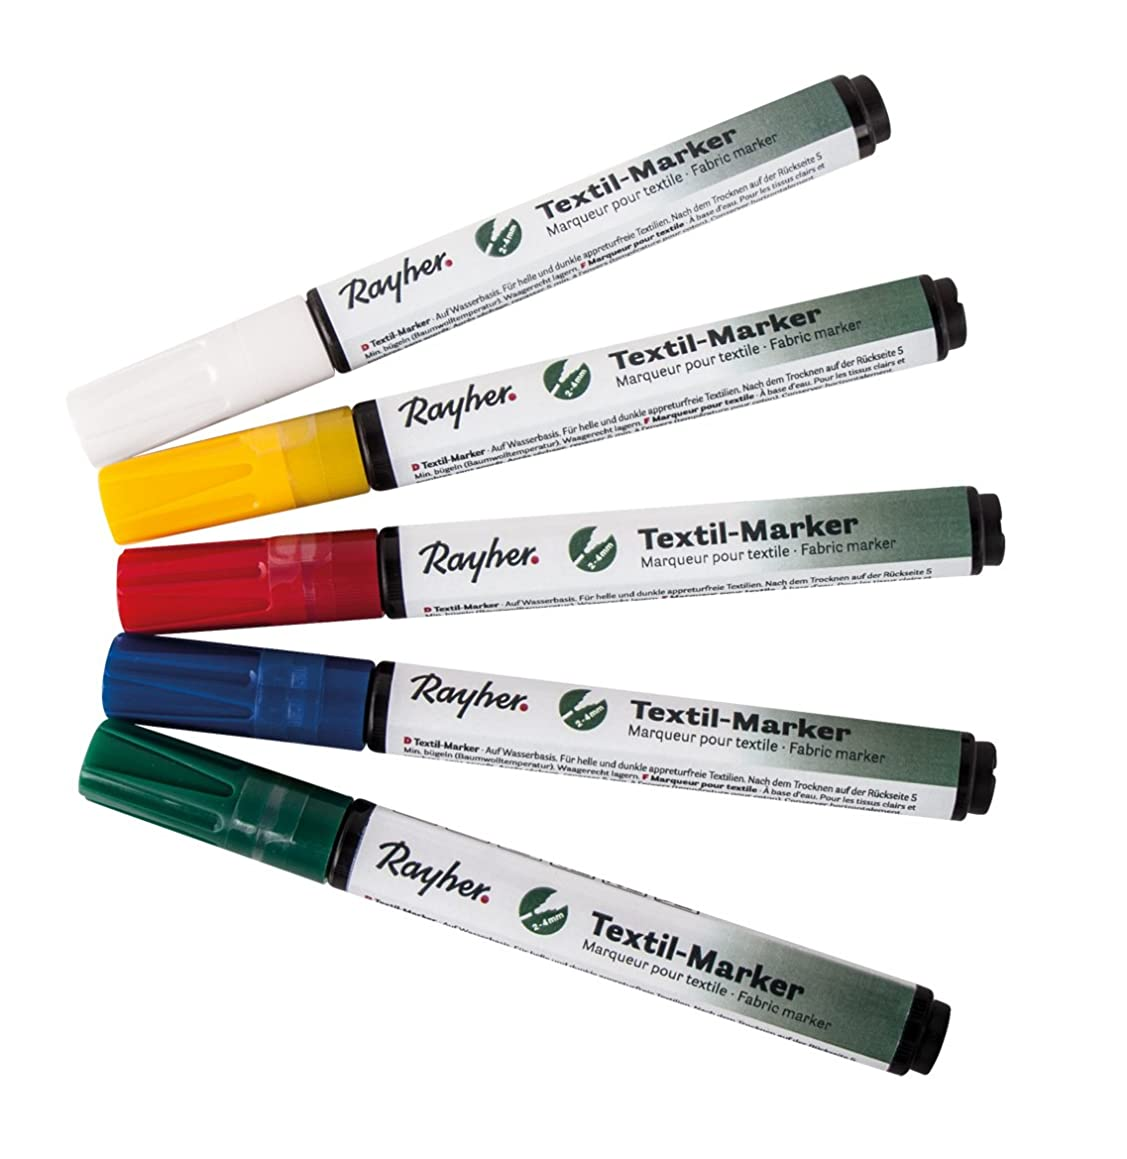 RAYHER Textile Marker Opaque Bullet Tip Valve Set 2?–?4?mm/Pack of 5?Assorted White Lemon, Classic Red, Apple Green, 1.16?x 1.44?x 0.16?cm Azure Blue